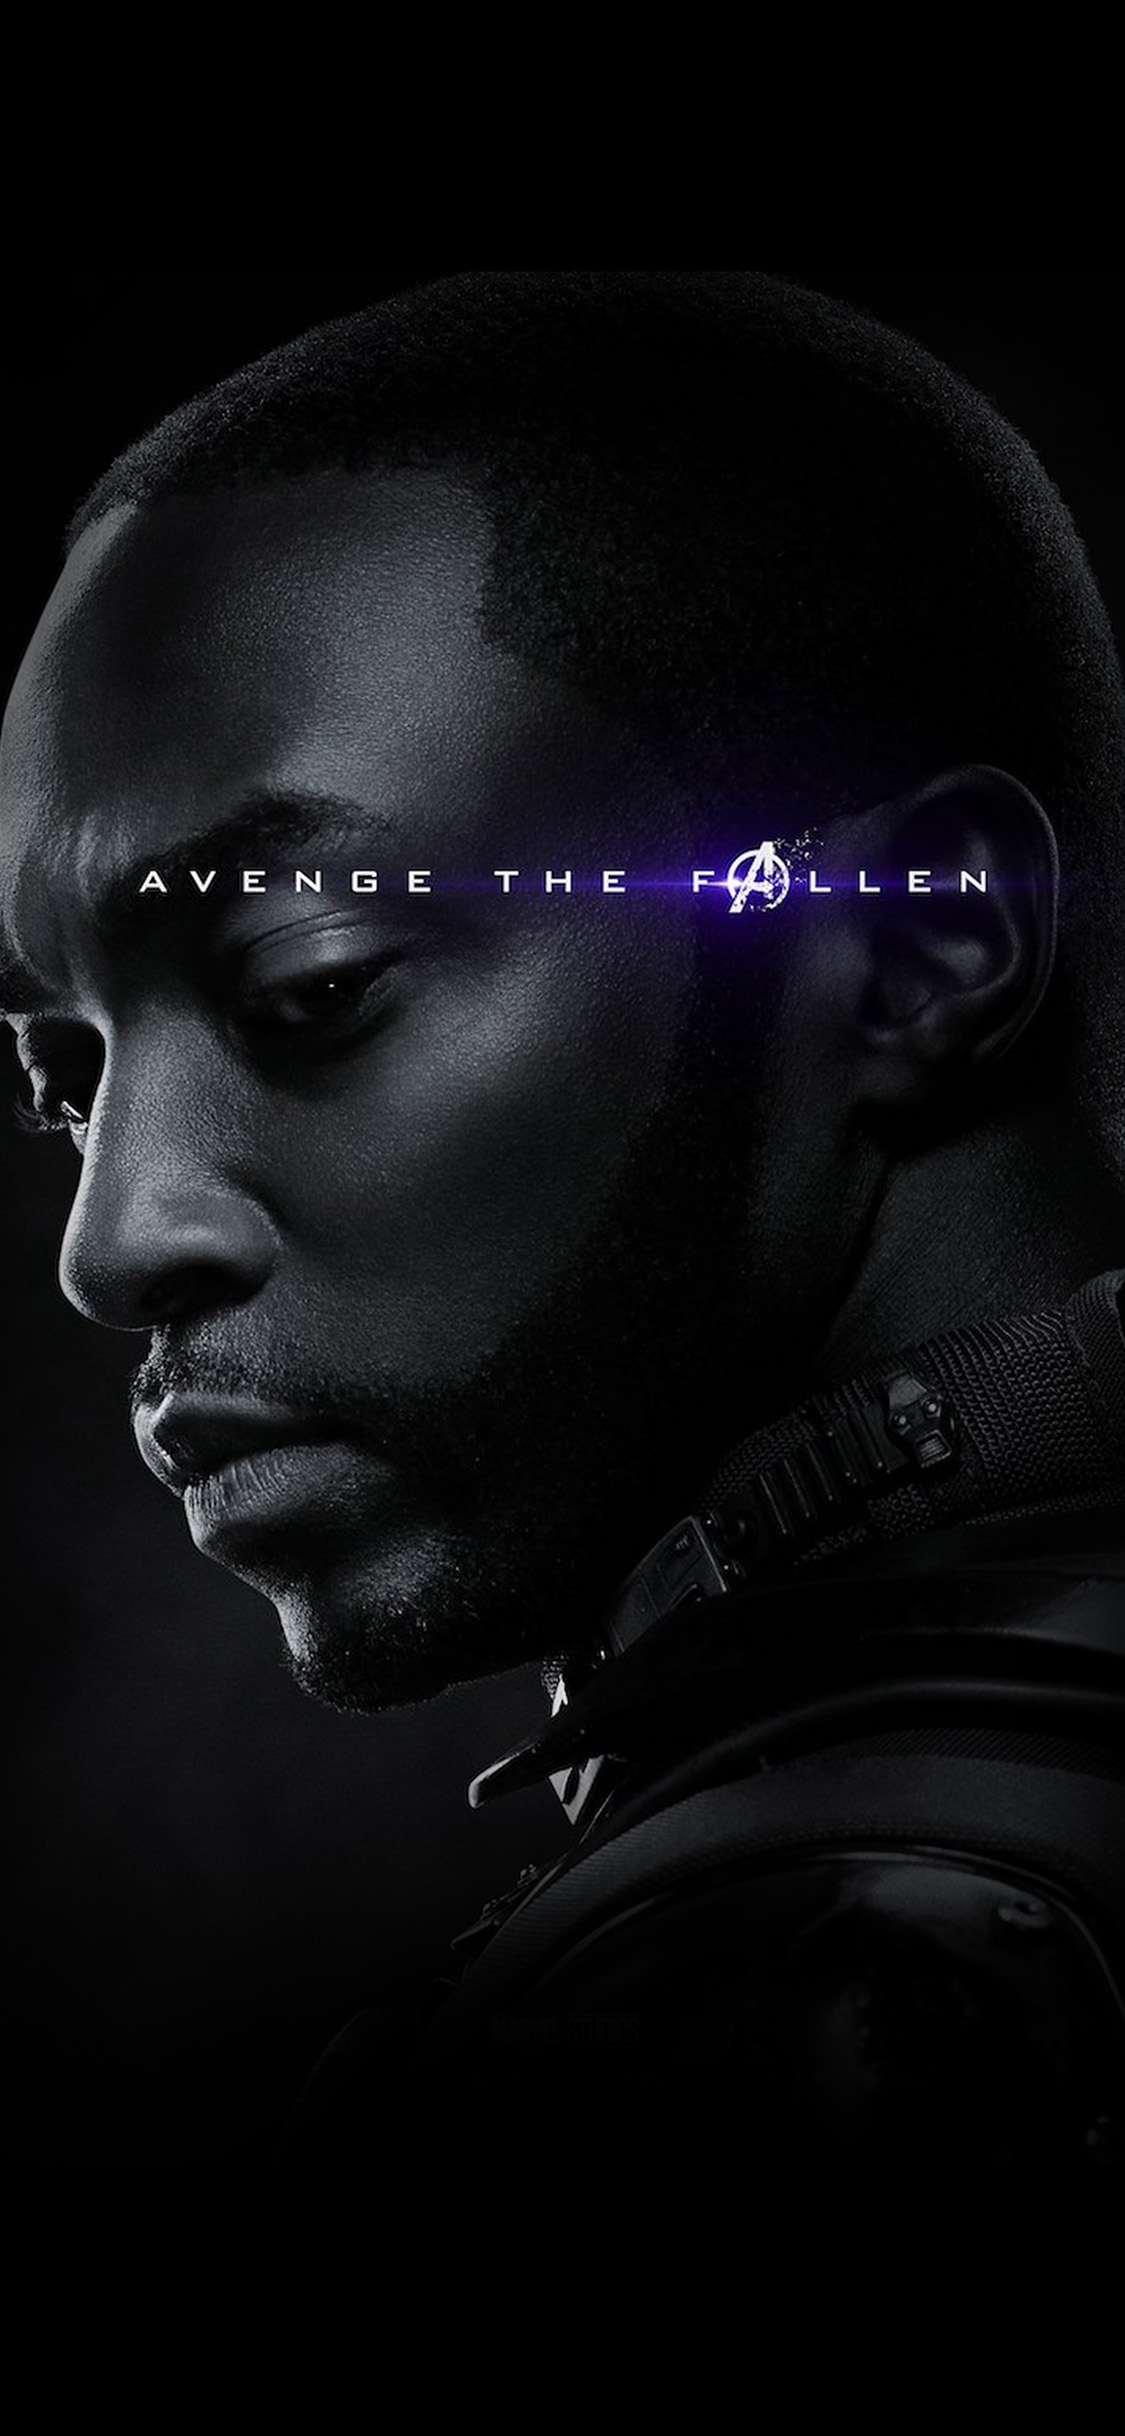 iPhonexpapers.com-Apple-iPhone-wallpaper-bi59-fly-avengers-endgame-hero-marvel-film-poster-art